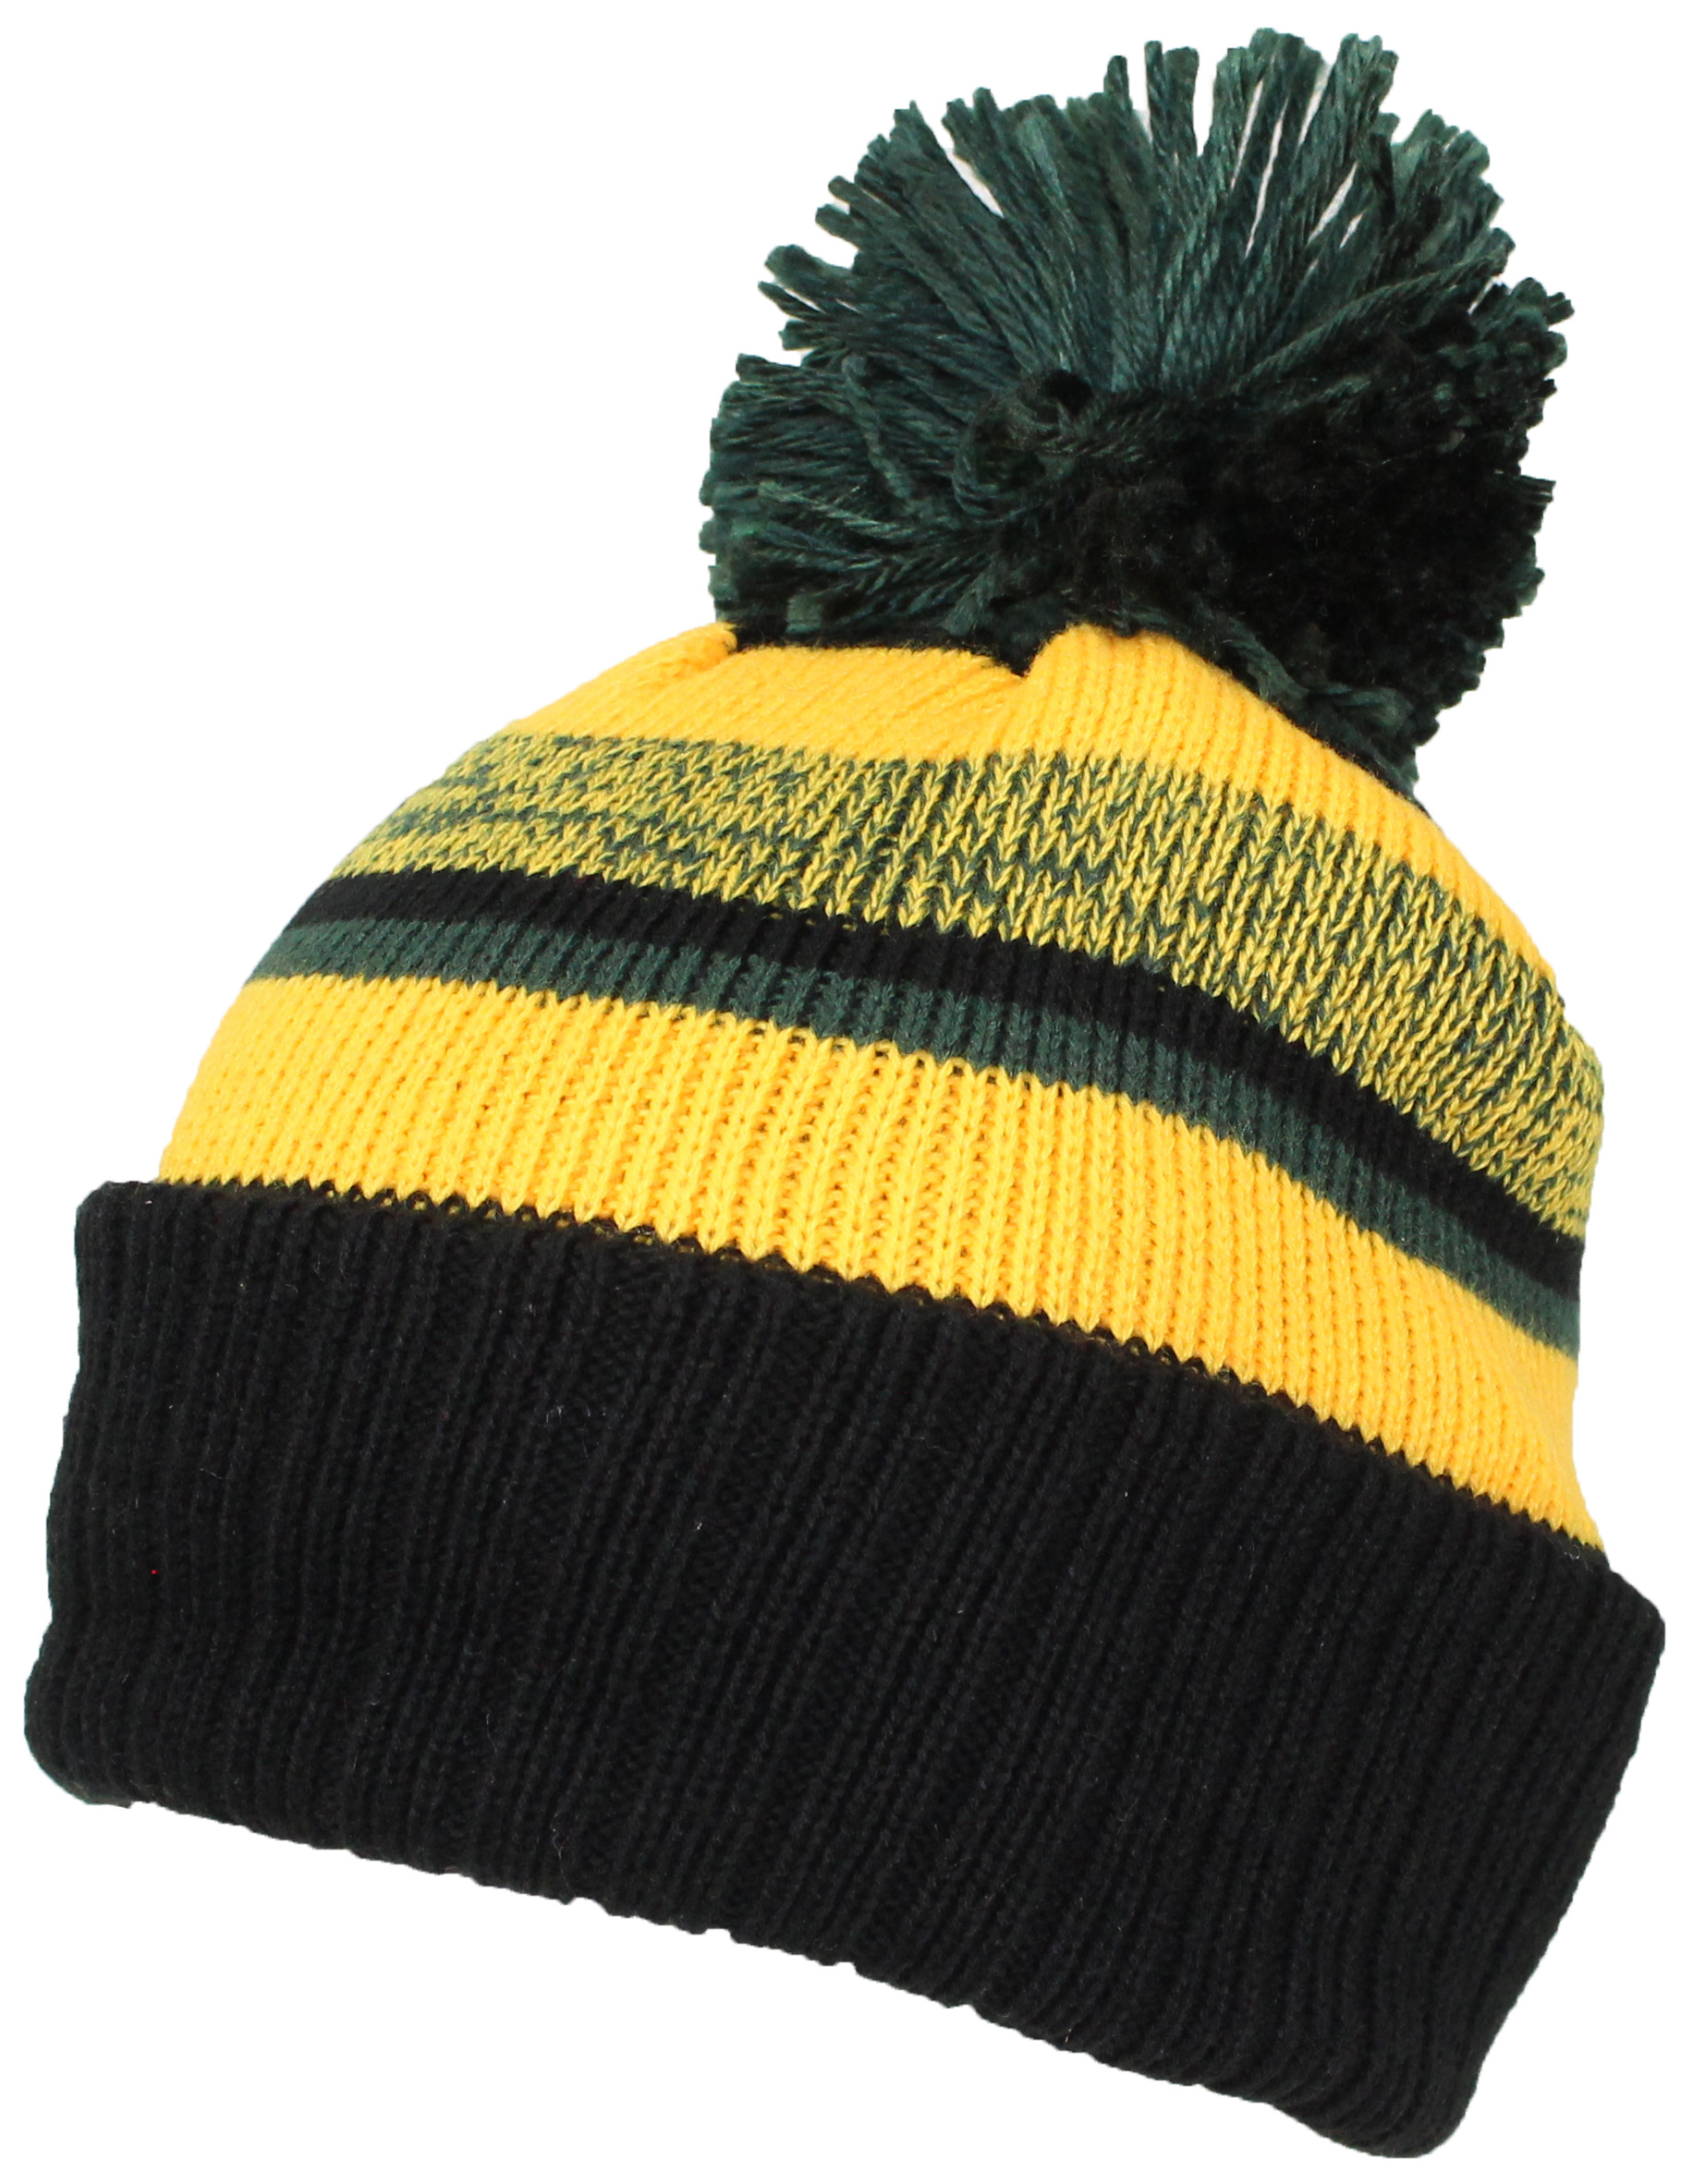 Best Winter Hats Quality Striped Variegated Cuffed Beanie W Pom (L XL) c322e23674c